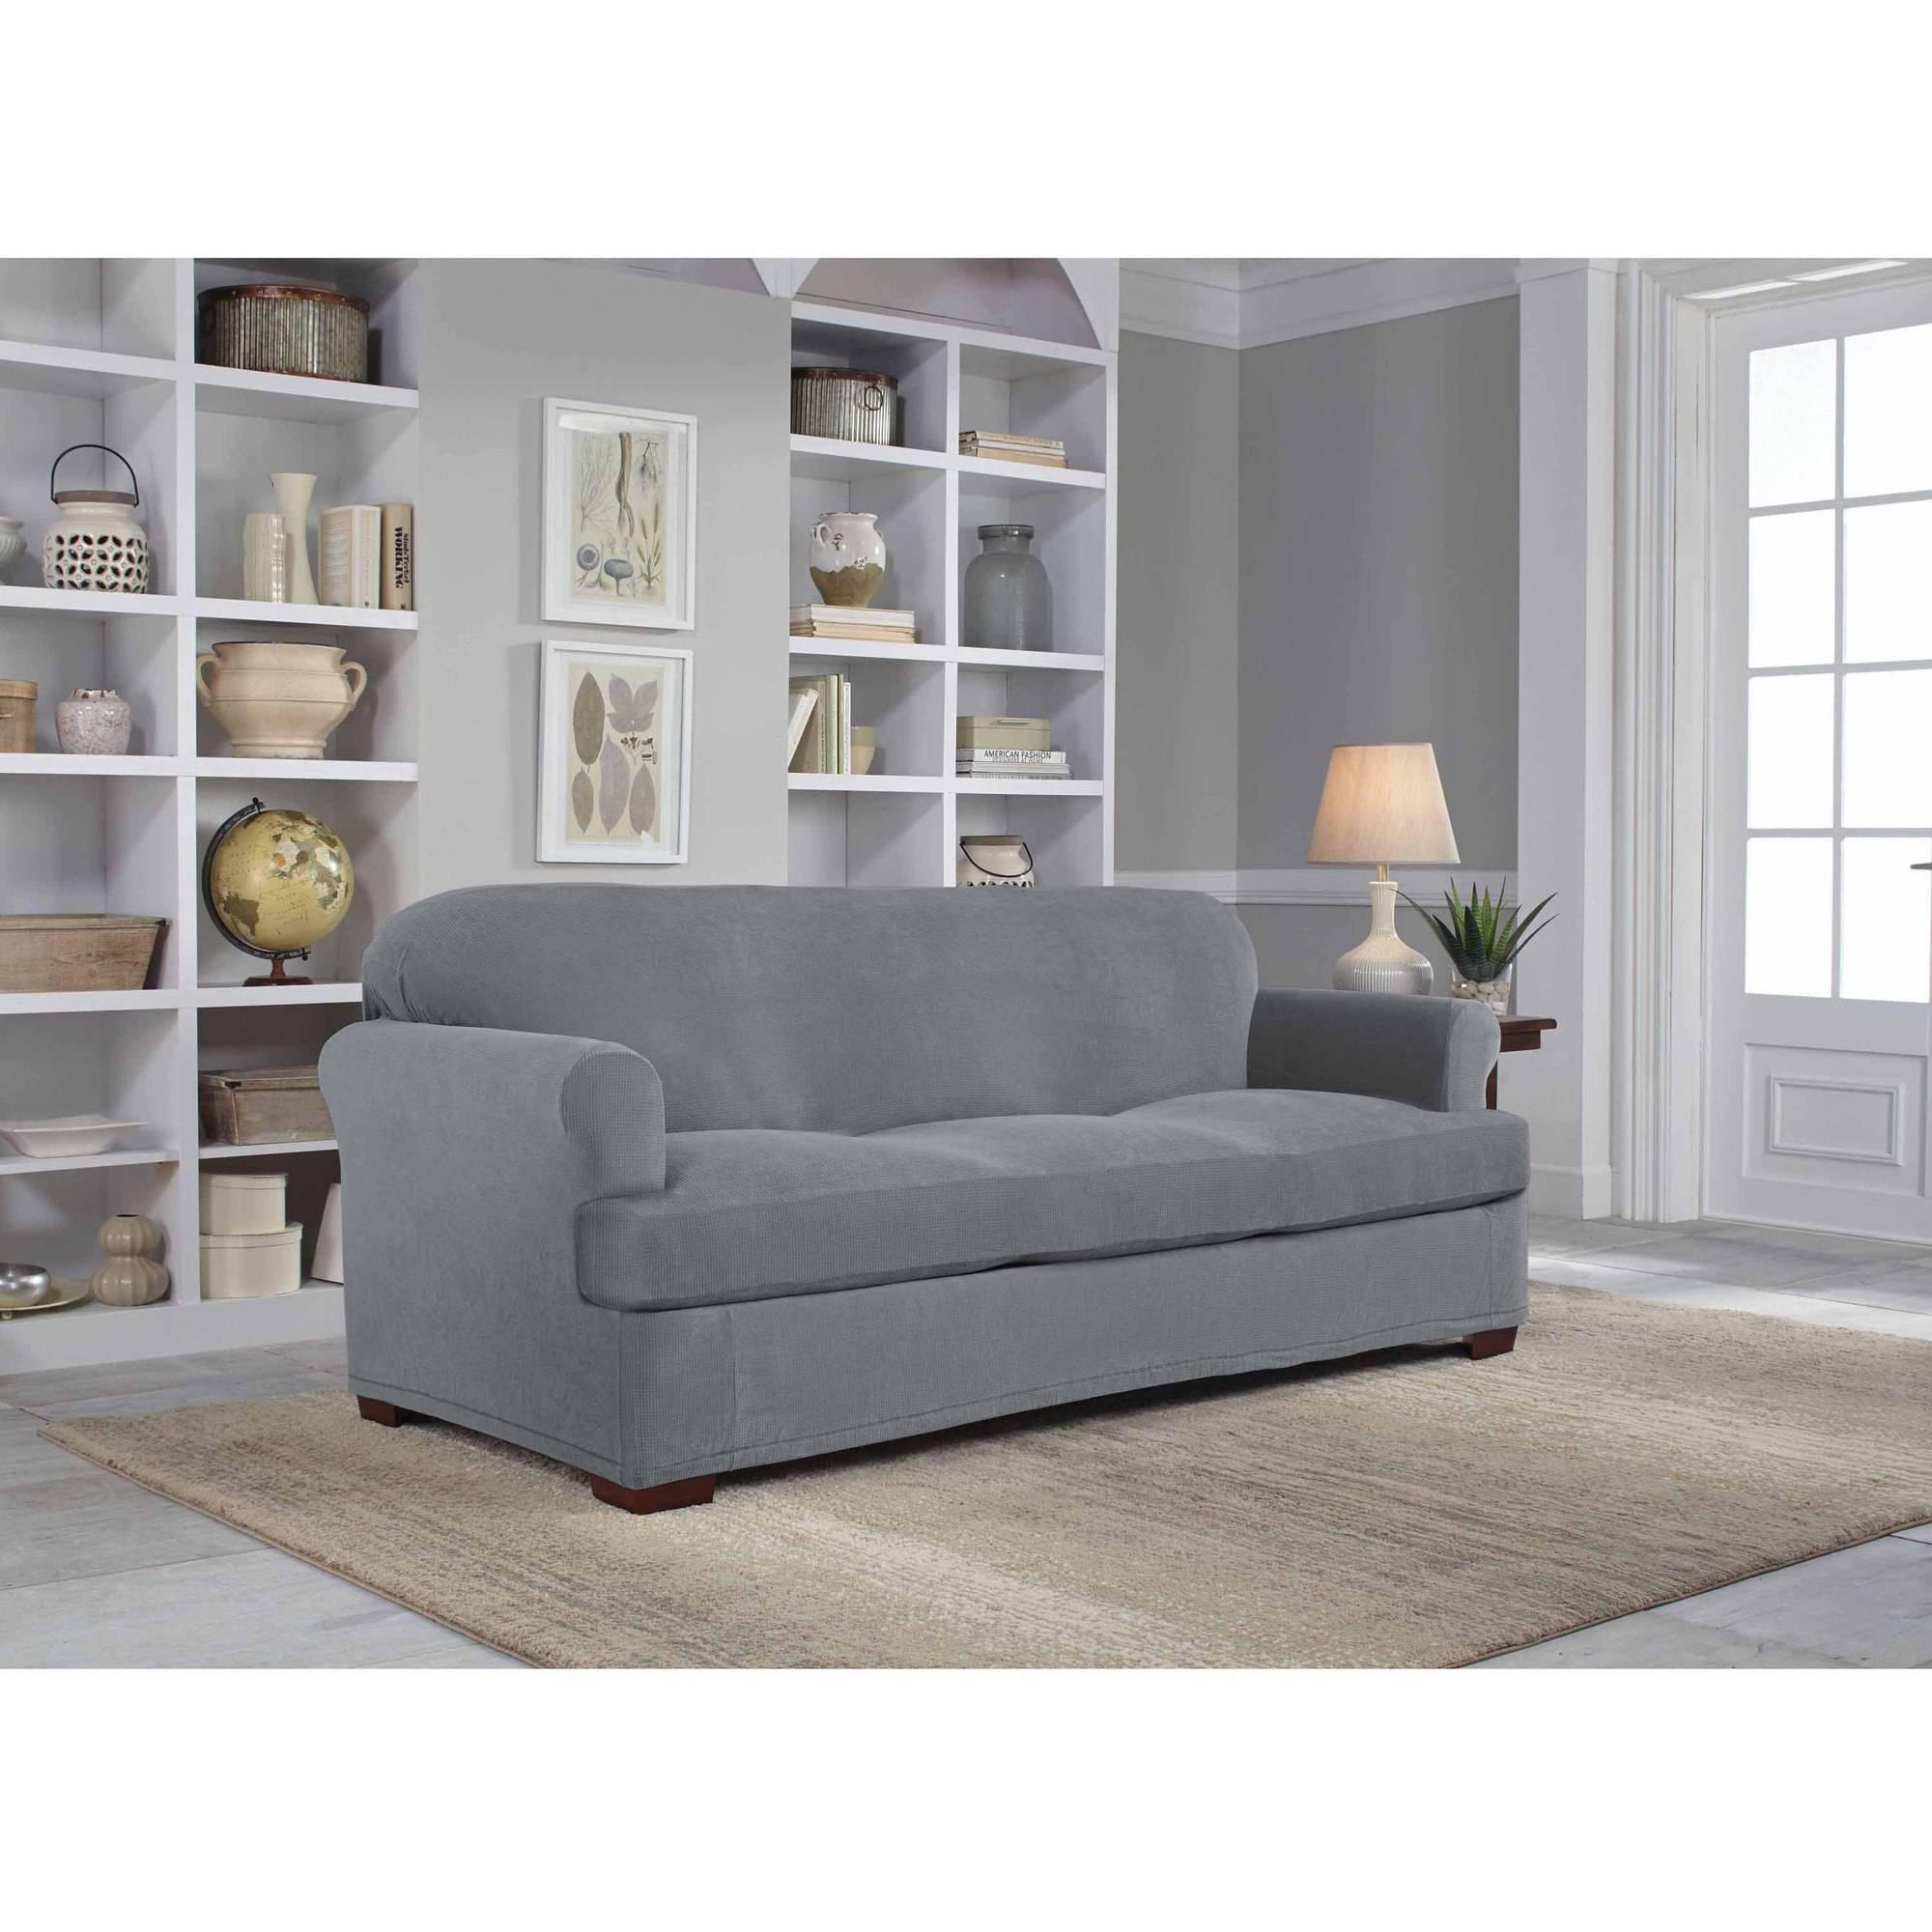 Serta Stretch Grid Slipcover, Sofa, 2 Piece T Cushion – Walmart Intended For Stretch Slipcover Sofas (Image 13 of 20)